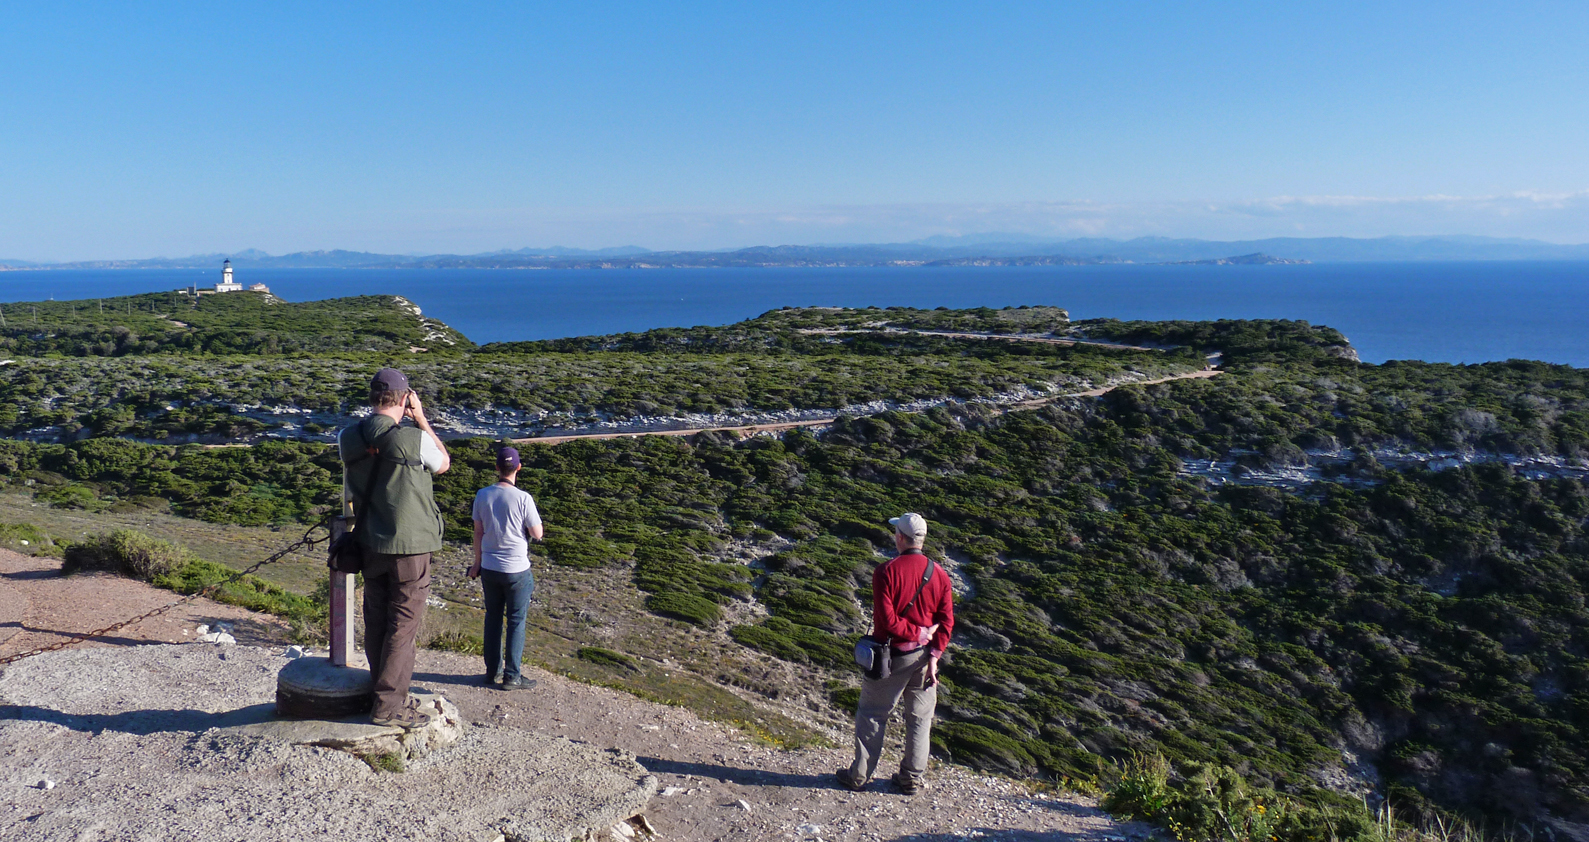 Back at the cliffs, looking over Bonifacio Strait, with Sardinia in the background